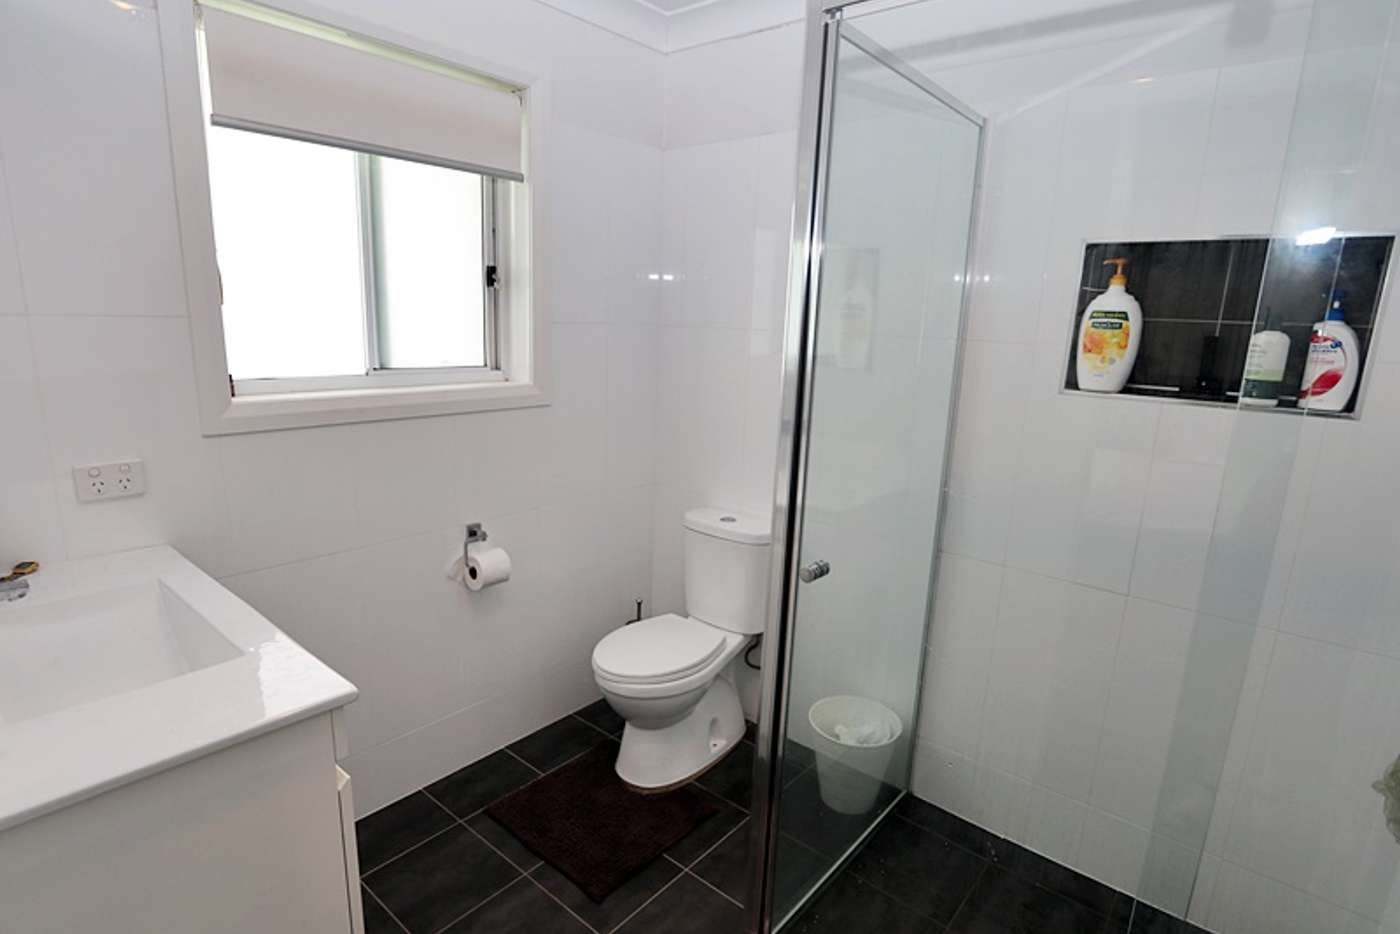 Sixth view of Homely house listing, 16 Mangrove Crescent, Forest Hill NSW 2651